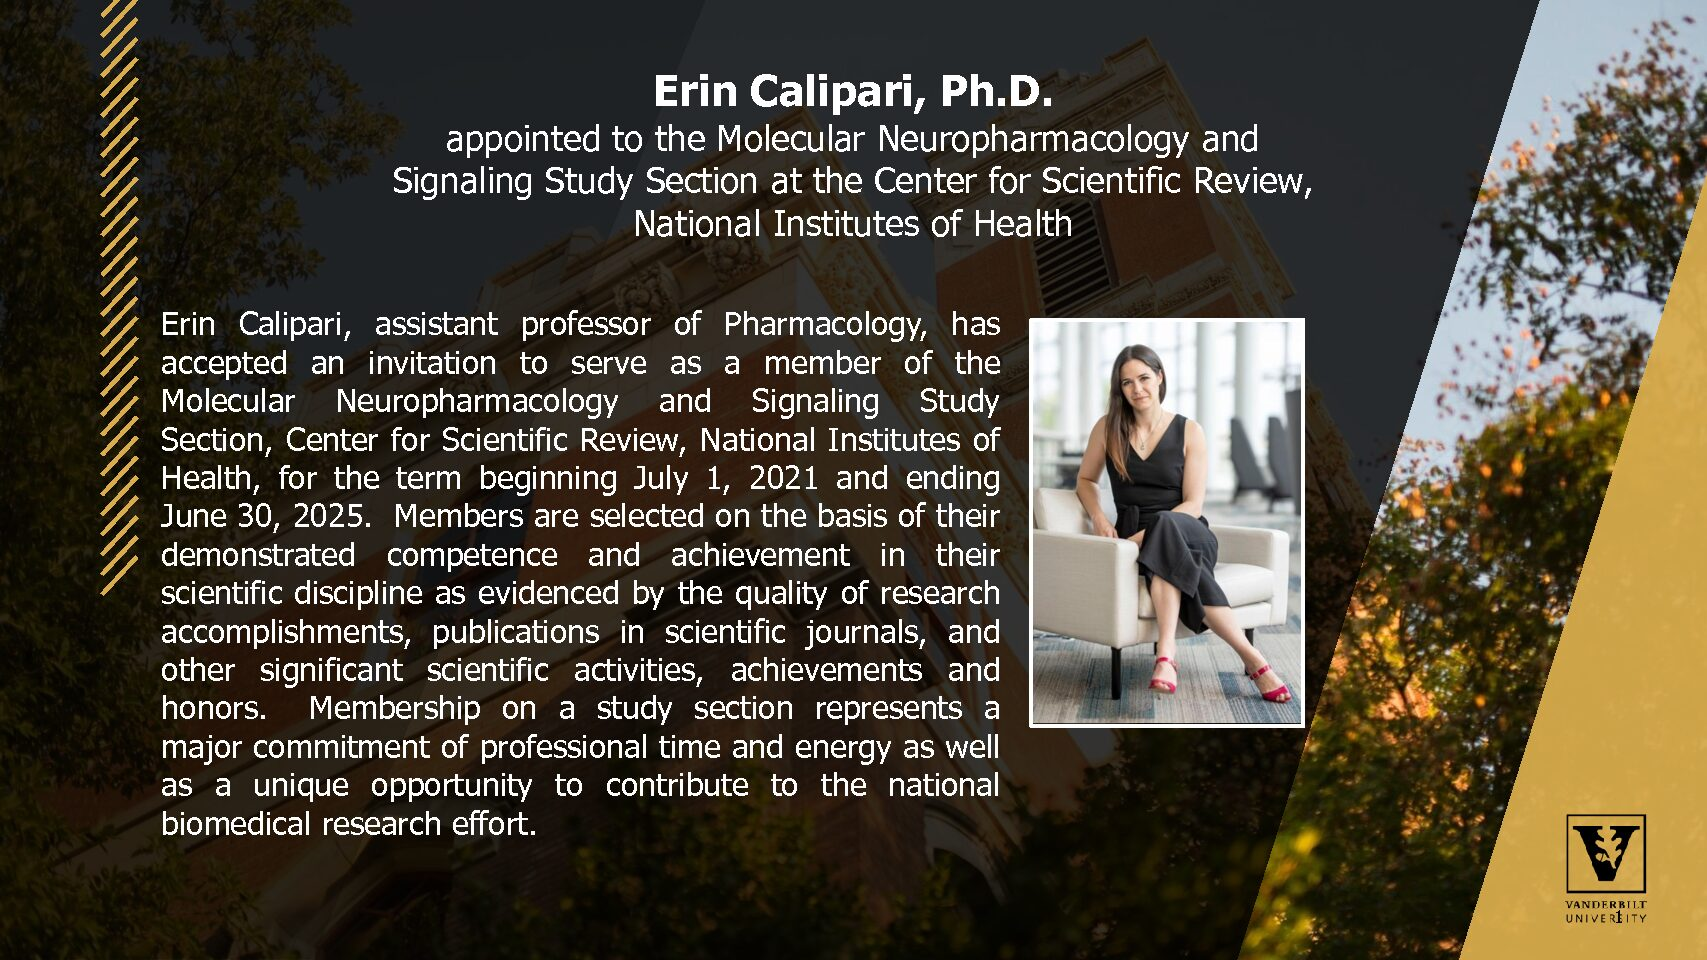 Erin Calipari's Appointment to the Molecular Neuropharmacology and Signaling Study Section